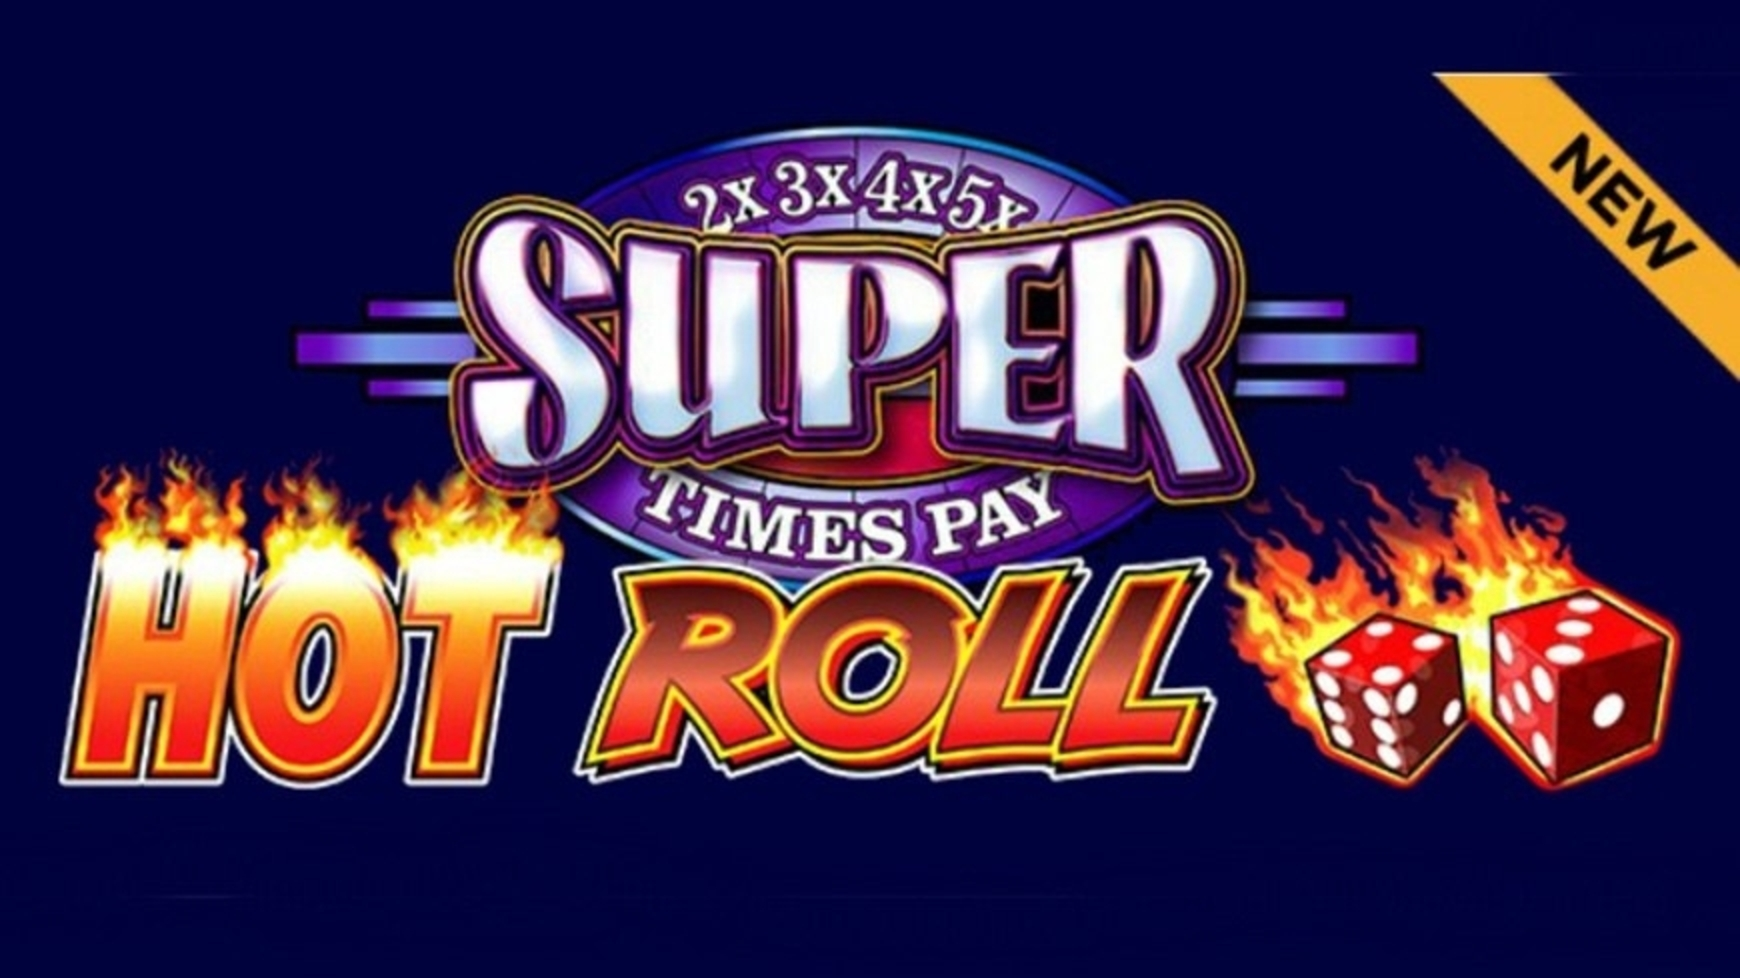 Super Times Pay Online Slot Demo Game by IGT